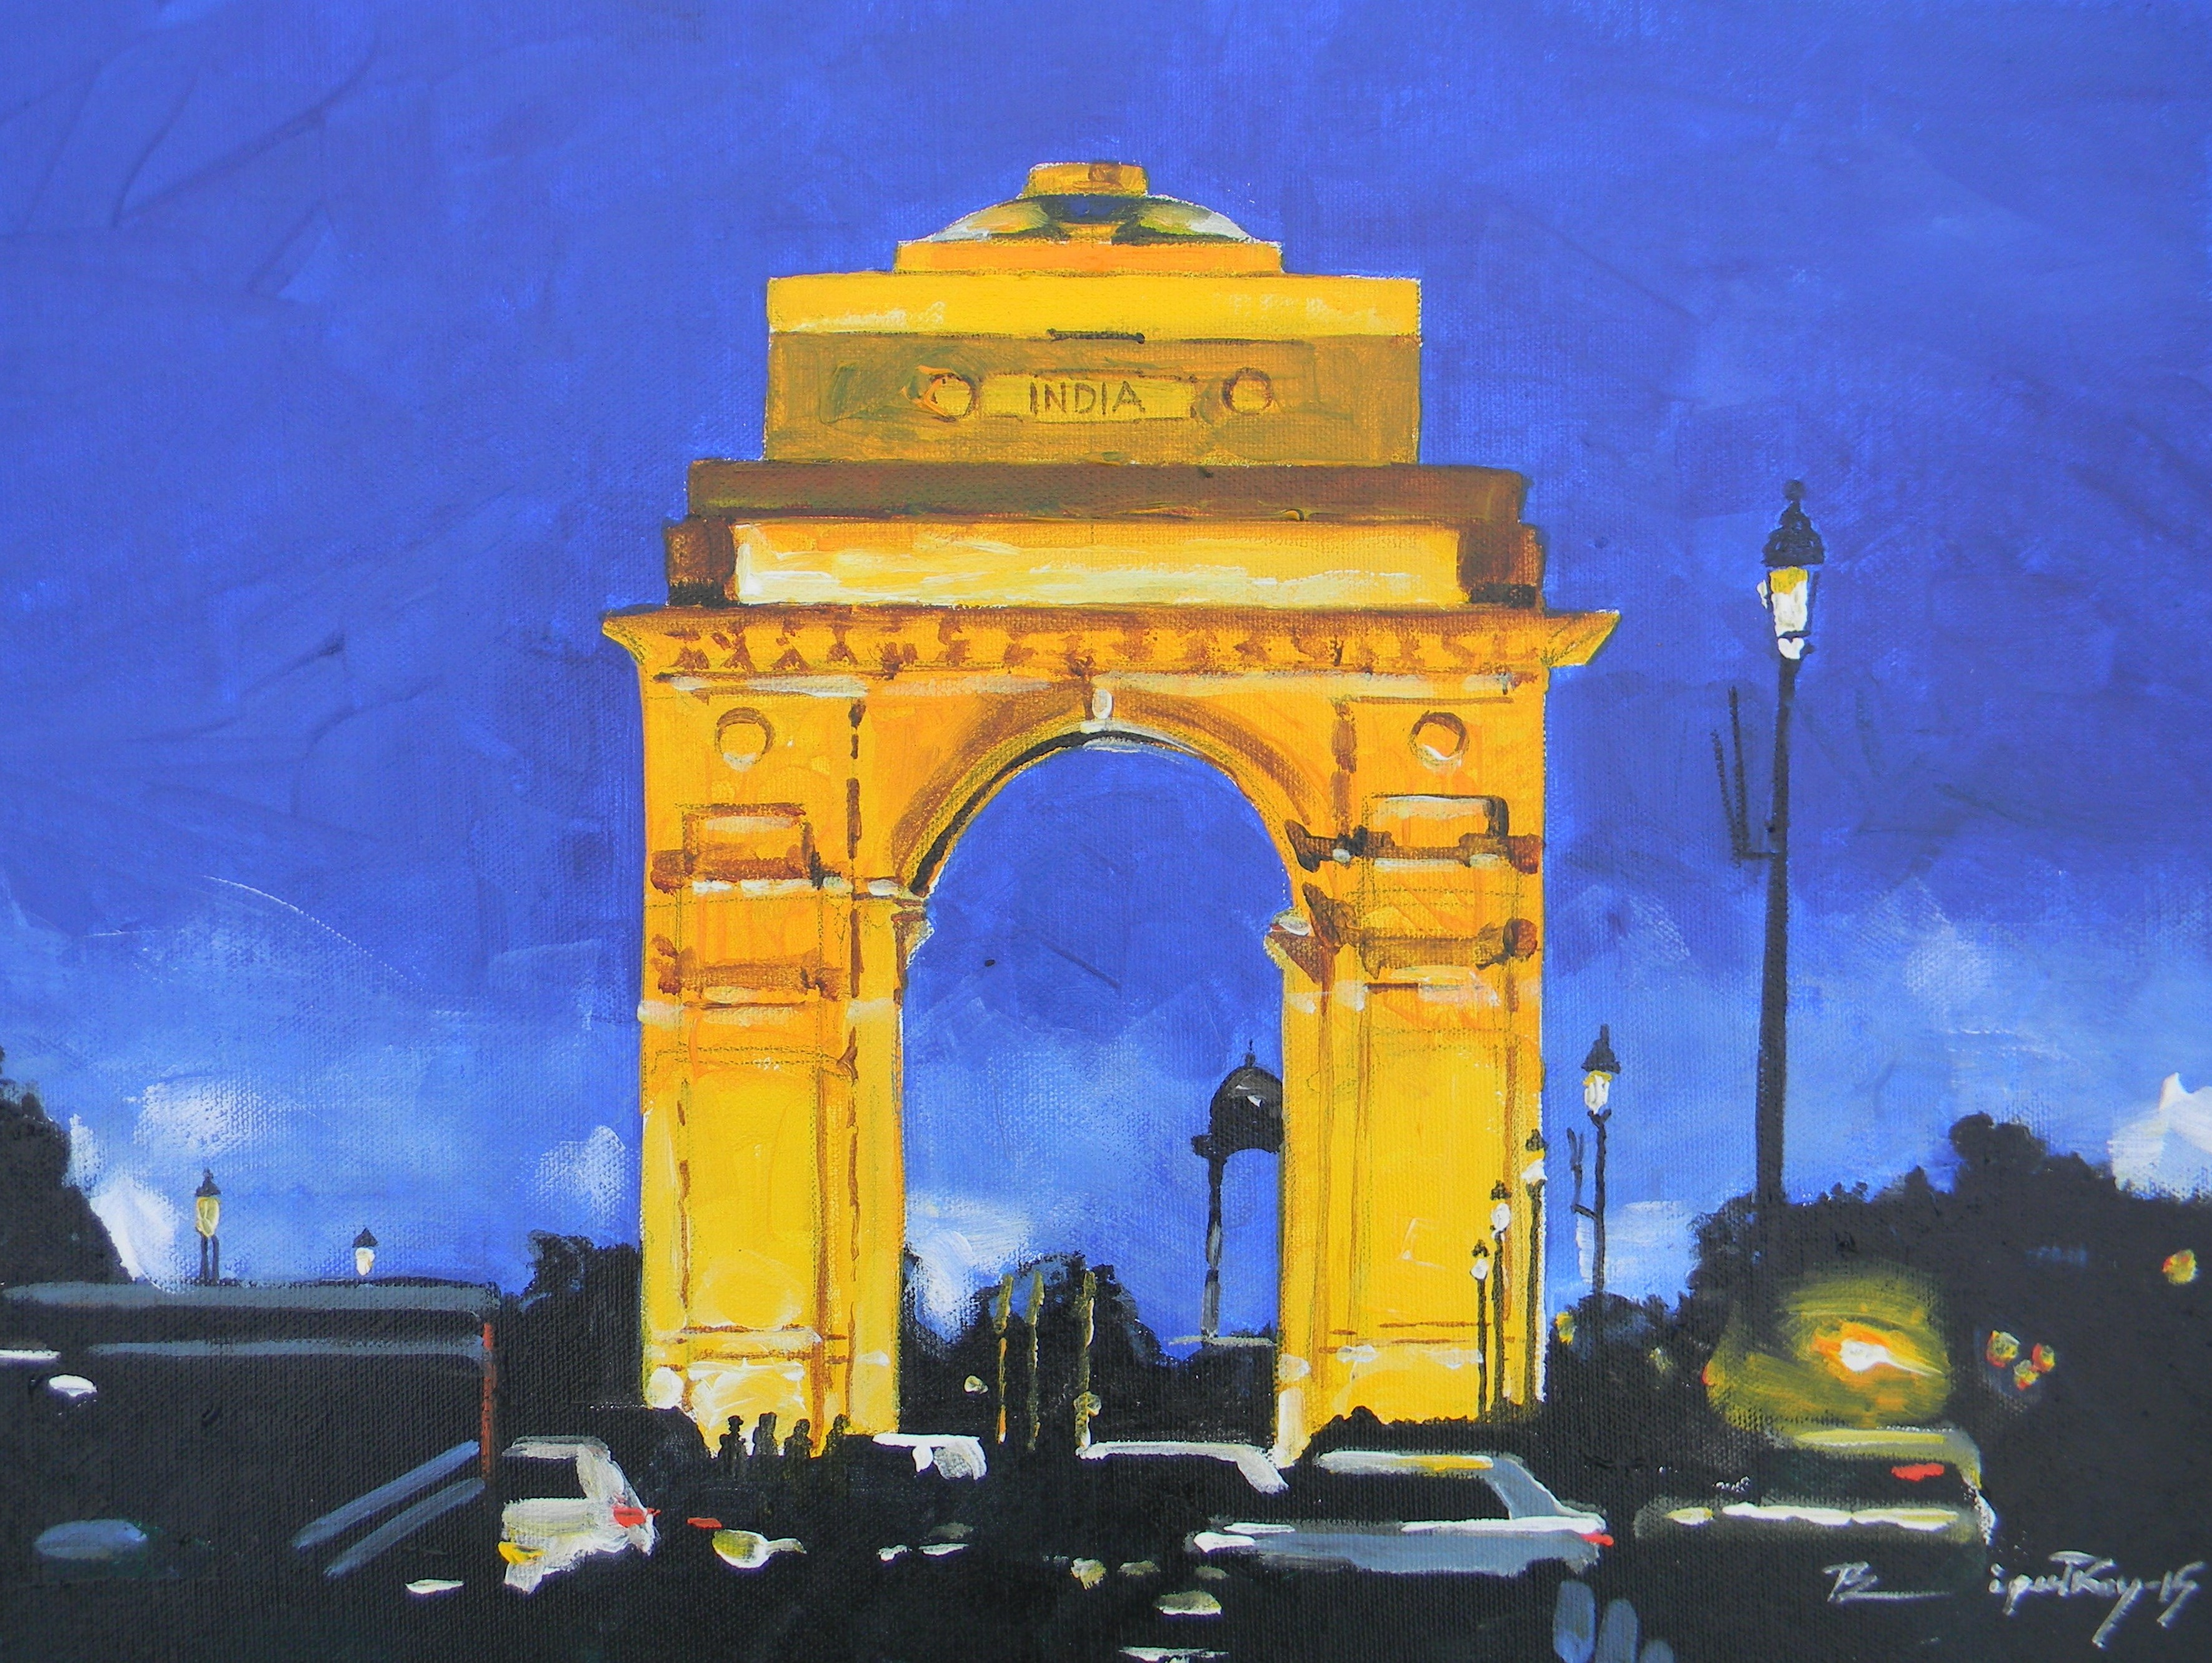 Night view of India gate 8239